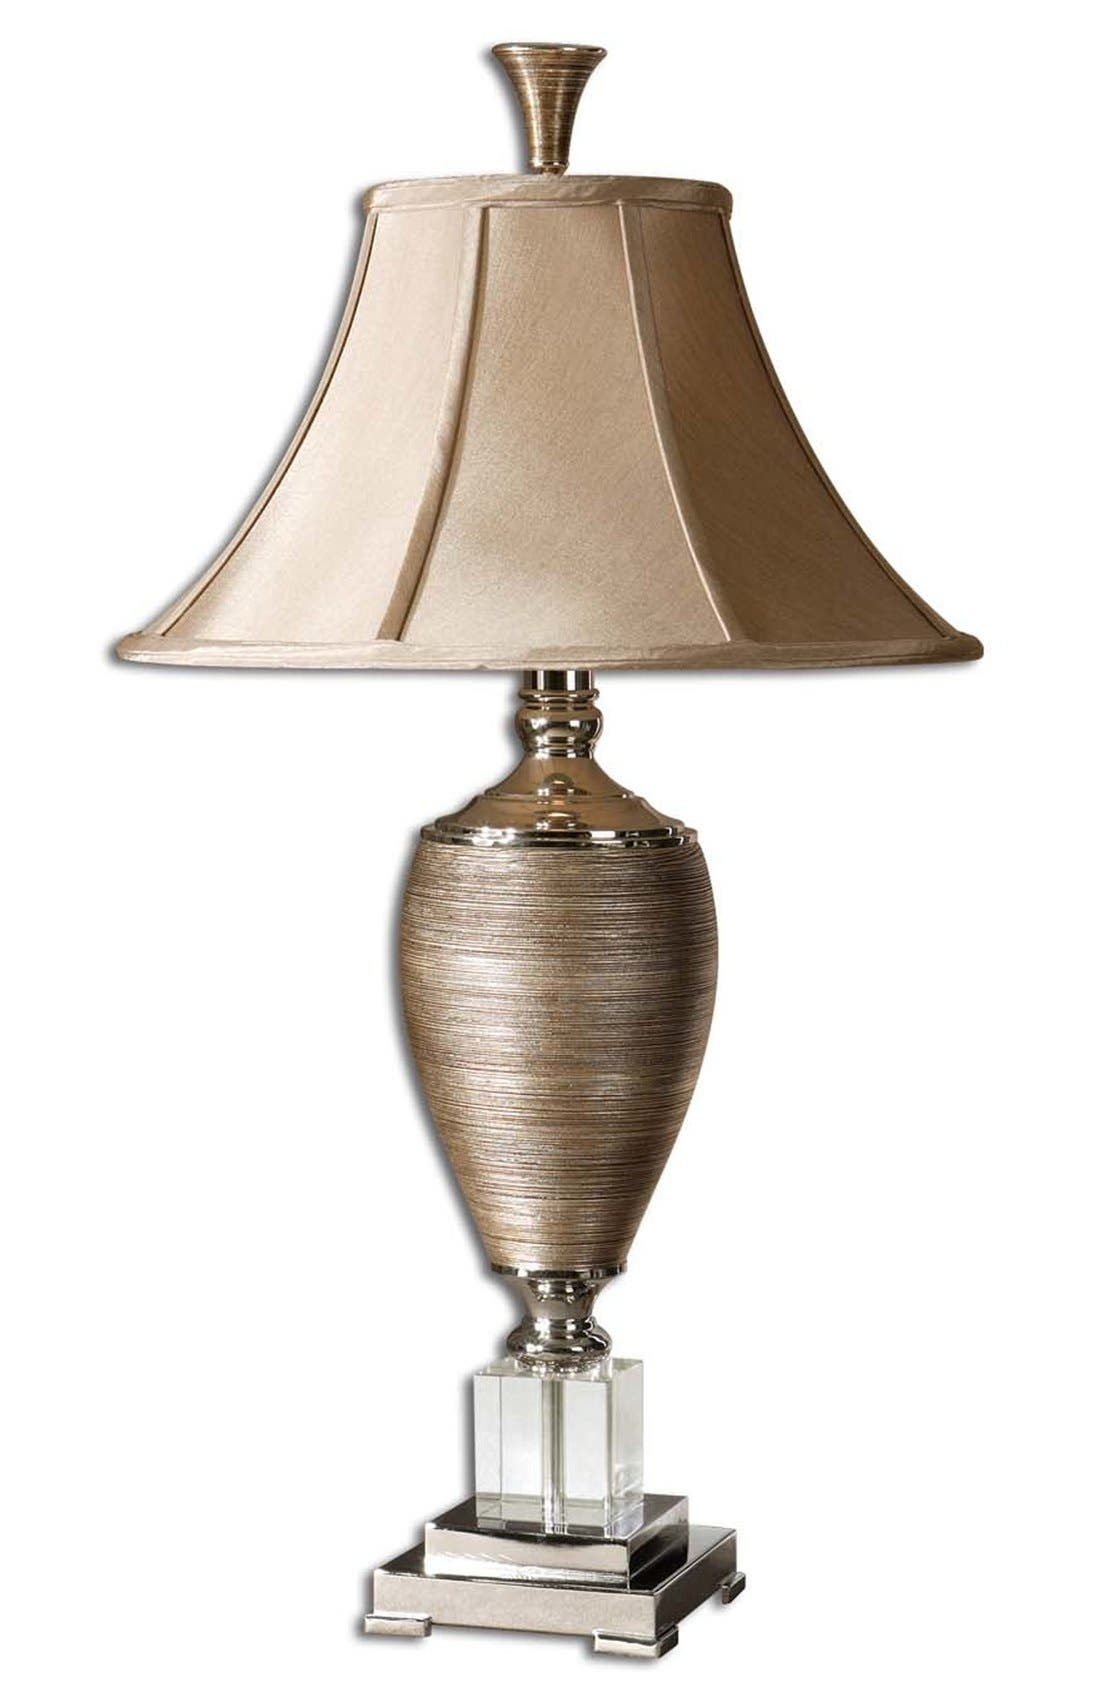 UTTERMOST 'Abriella' Table Lamp